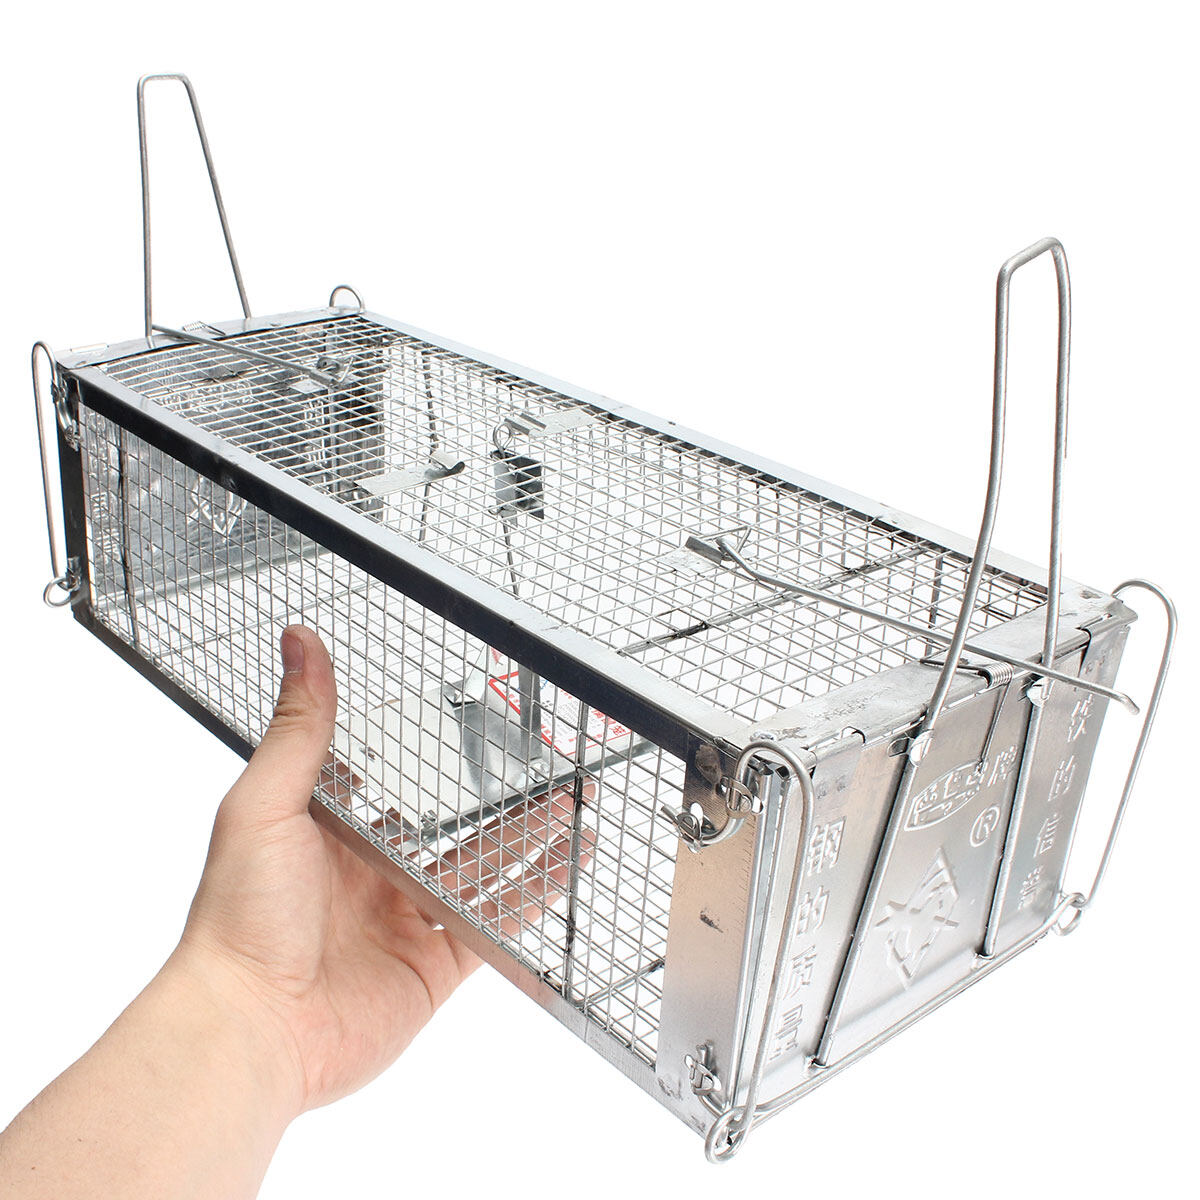 Reusable Rodent Live Animal Mouse Trap Snap Hamster Cage Rat Control Catch Bait